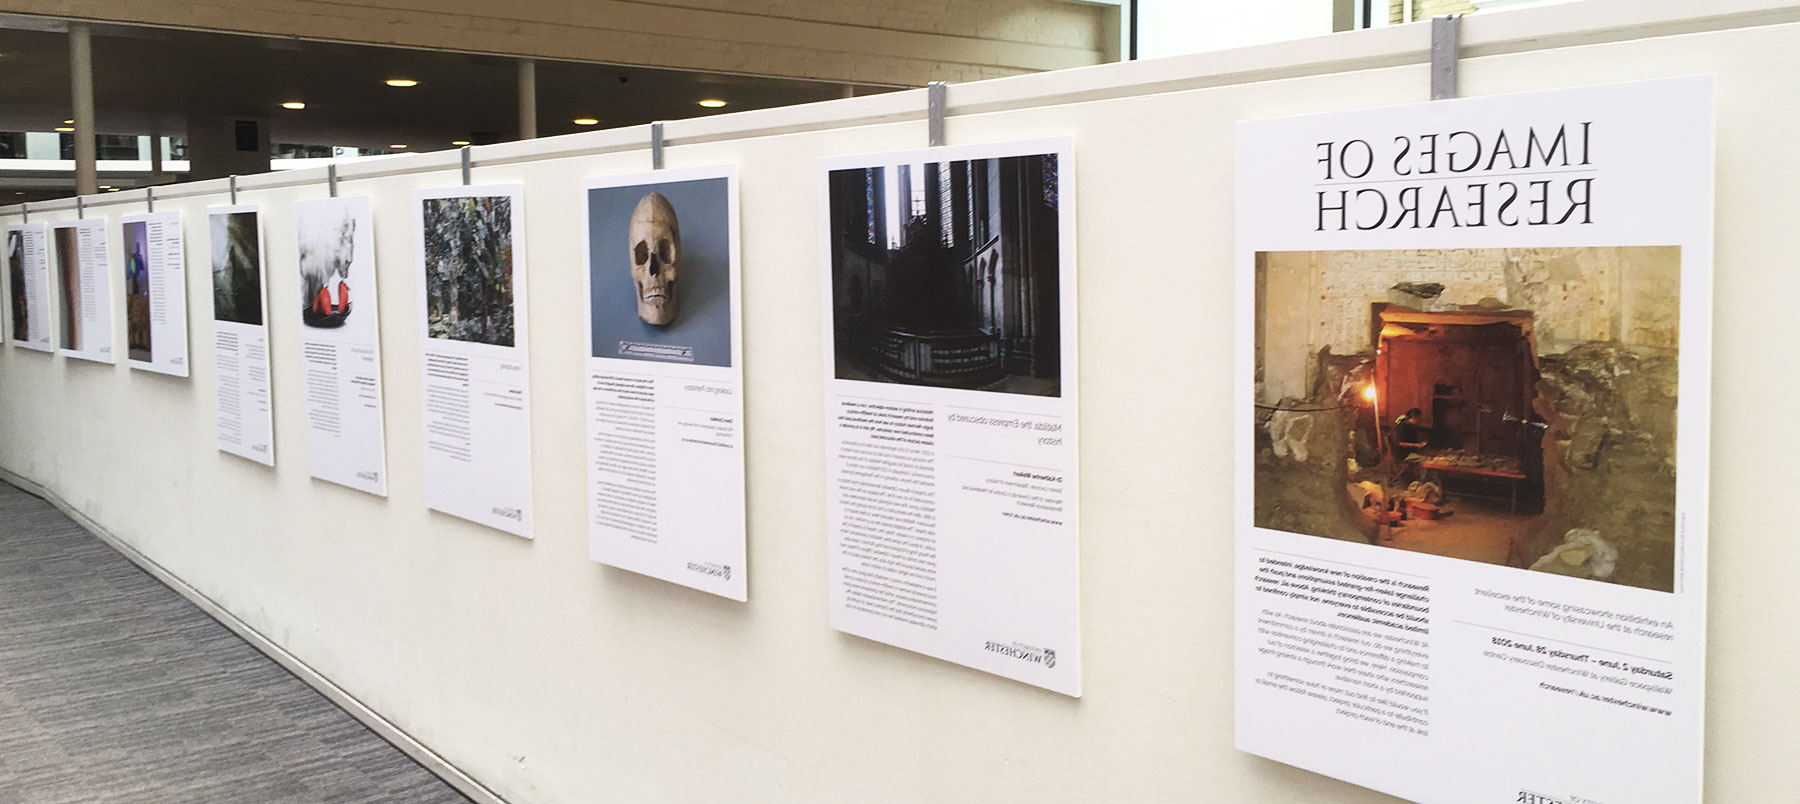 Showcasing research at Winchester: Images of research exhibition 2018 on display in winchester discovery Centre